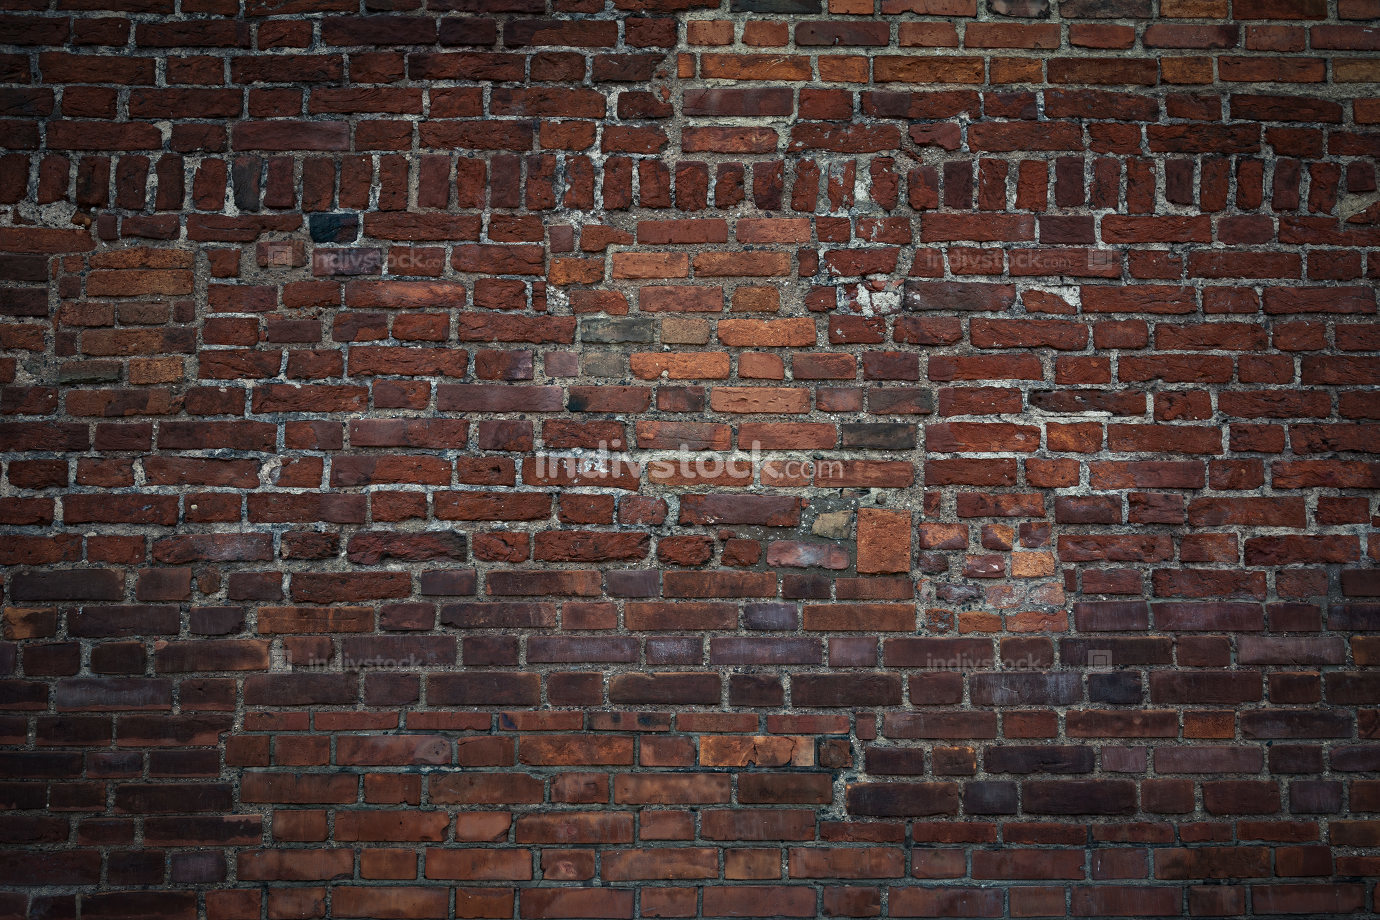 Large and old brick wall